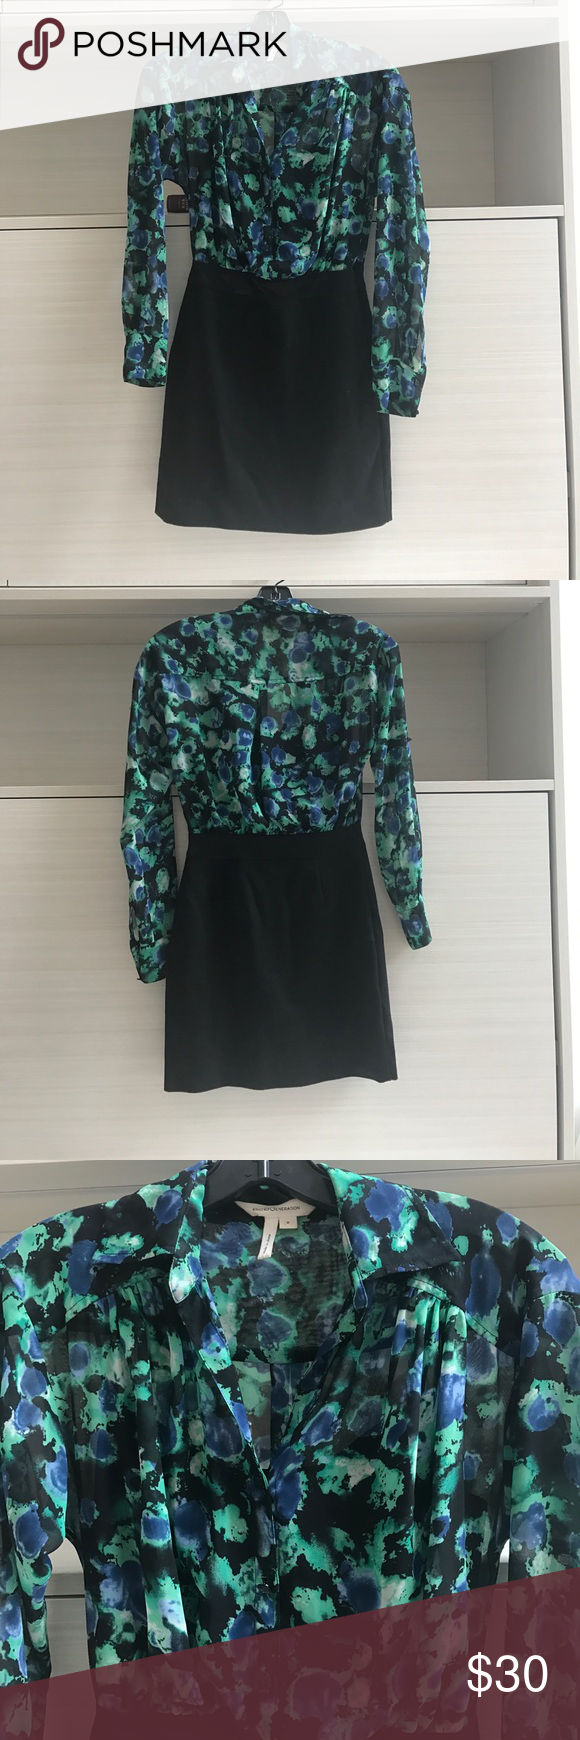 Business pencil skirt and sheer flower blouse Slimming business dress. Black shirt attached on inside of outside sheer long sleeve flower blouse. Side zipper and two buttons to easily slip and out of. BCBGeneration Skirts Pencil